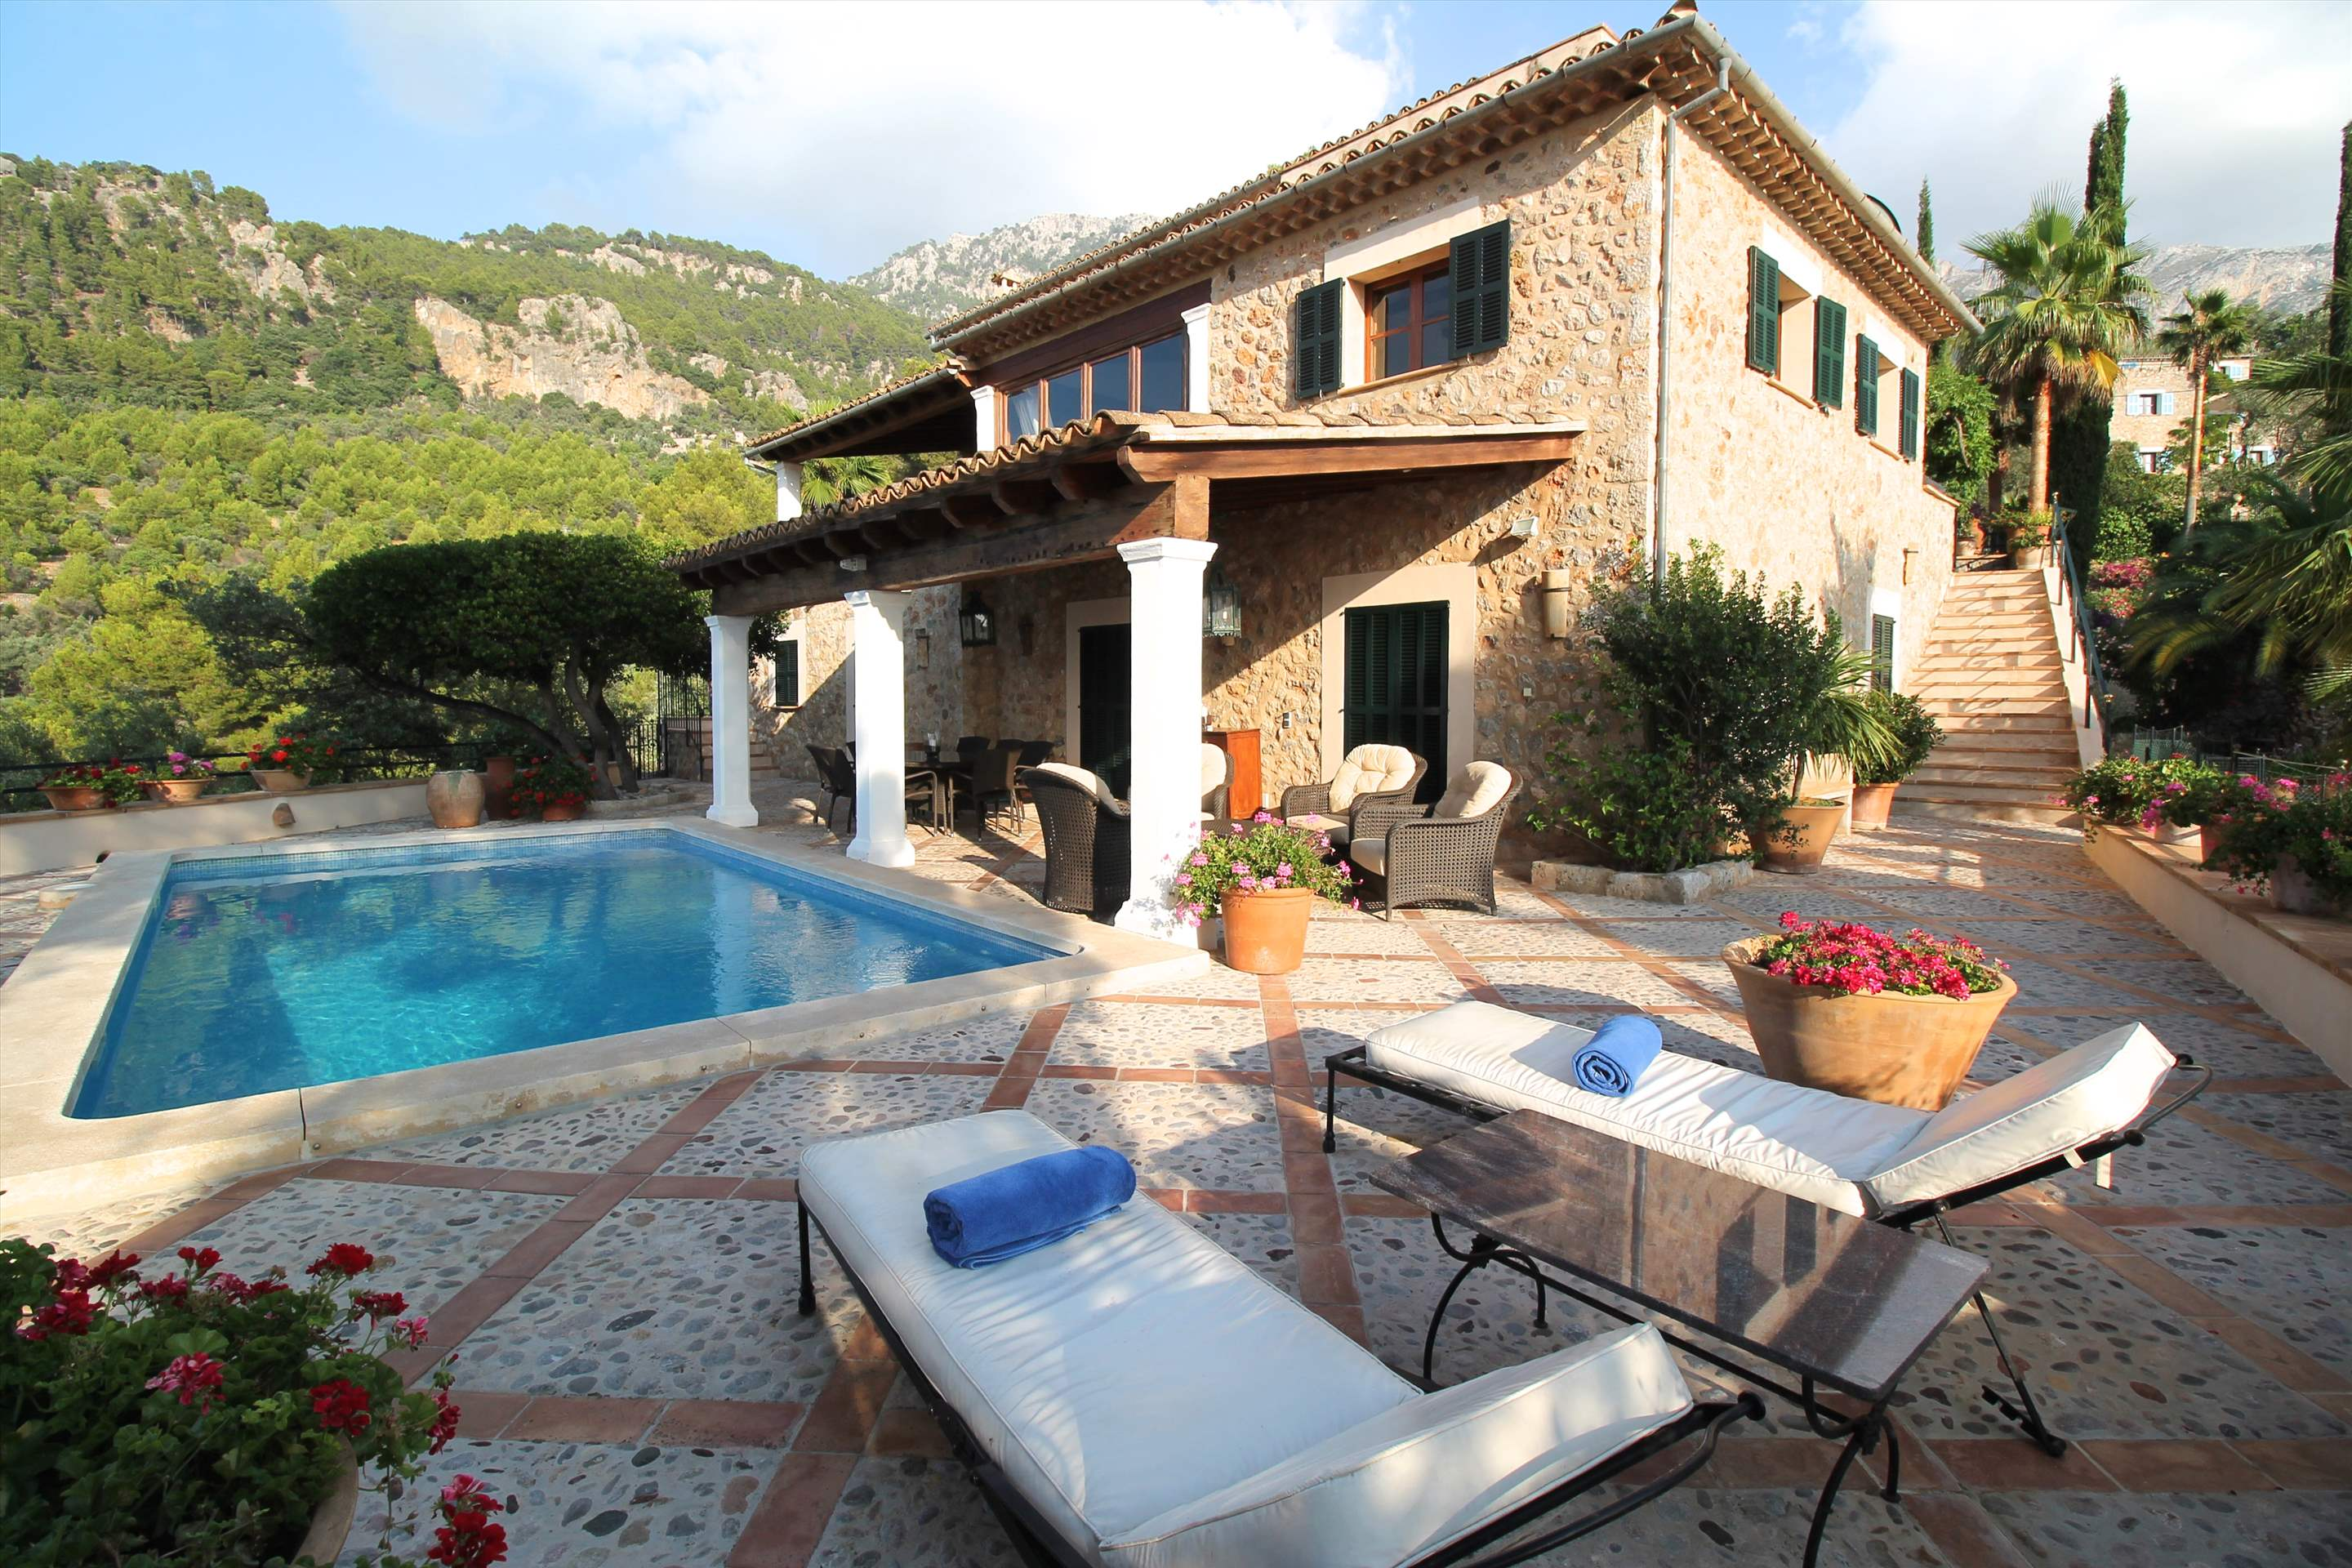 Can Winando, 4 Bedroom Rental, 4 bedroom villa in Soller & Deia, Majorca